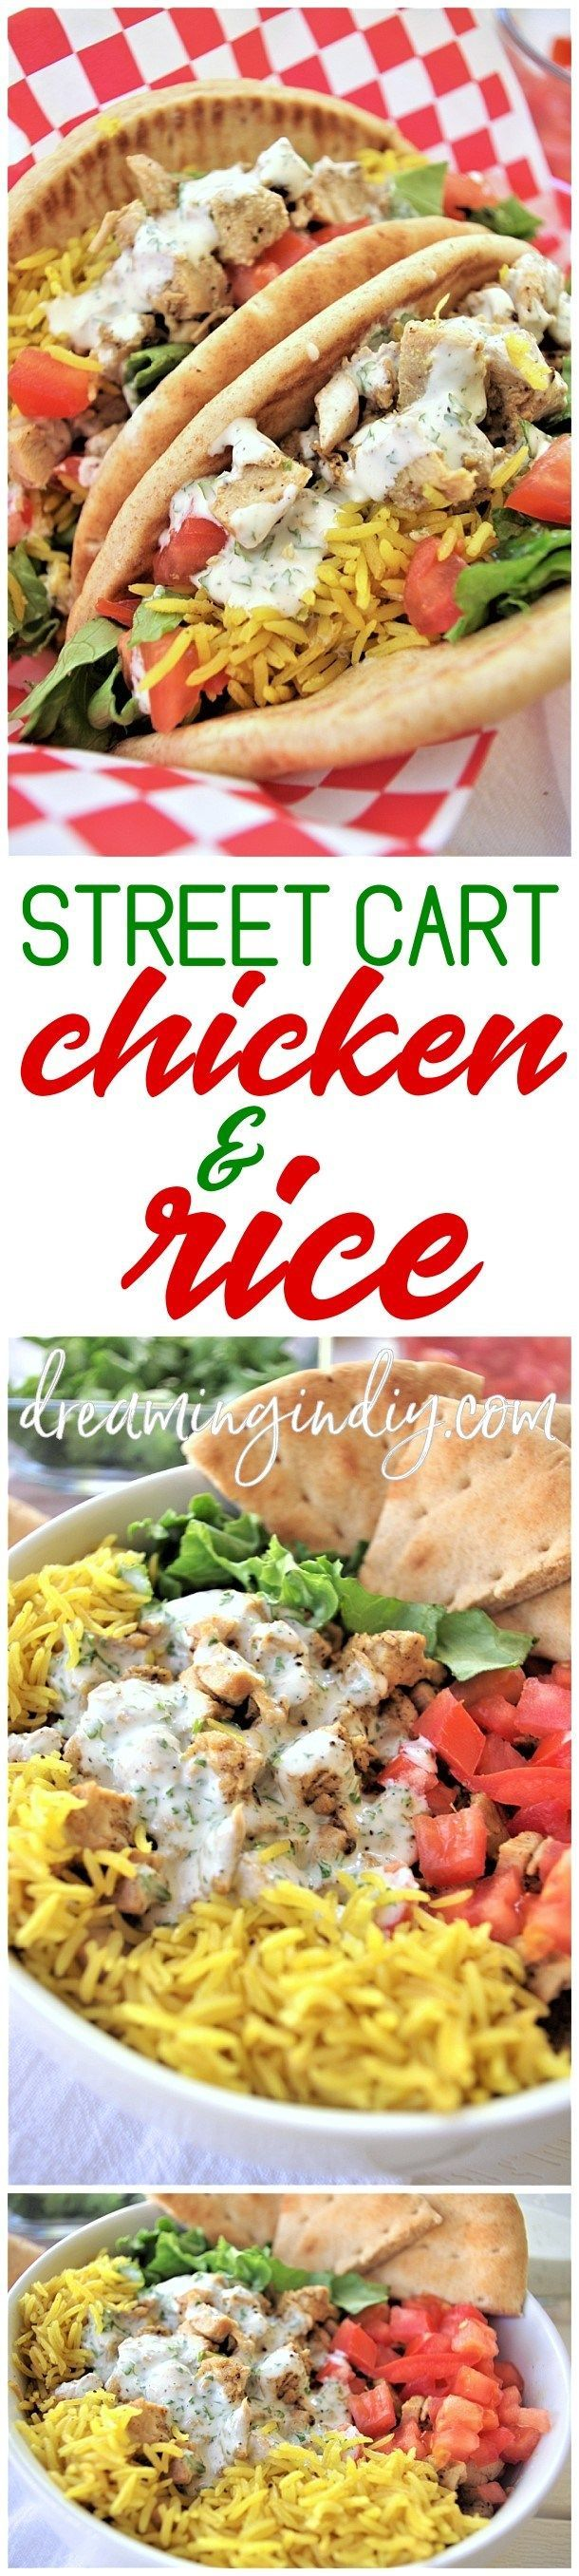 """Easy and Delicious Street Cart Mediterranean Chicken and Rice Bowls or Pitas Sandwich Quick and Simple Recipes via Dreaming in DIY - This street vendor cart style chicken and rice recipe is PACKED with amazing Mediterranean flavors! The sauce is what really elevates this recipe from """"delicious and we really liked it"""" to """"Total keeper - must make again SOON!"""" status."""